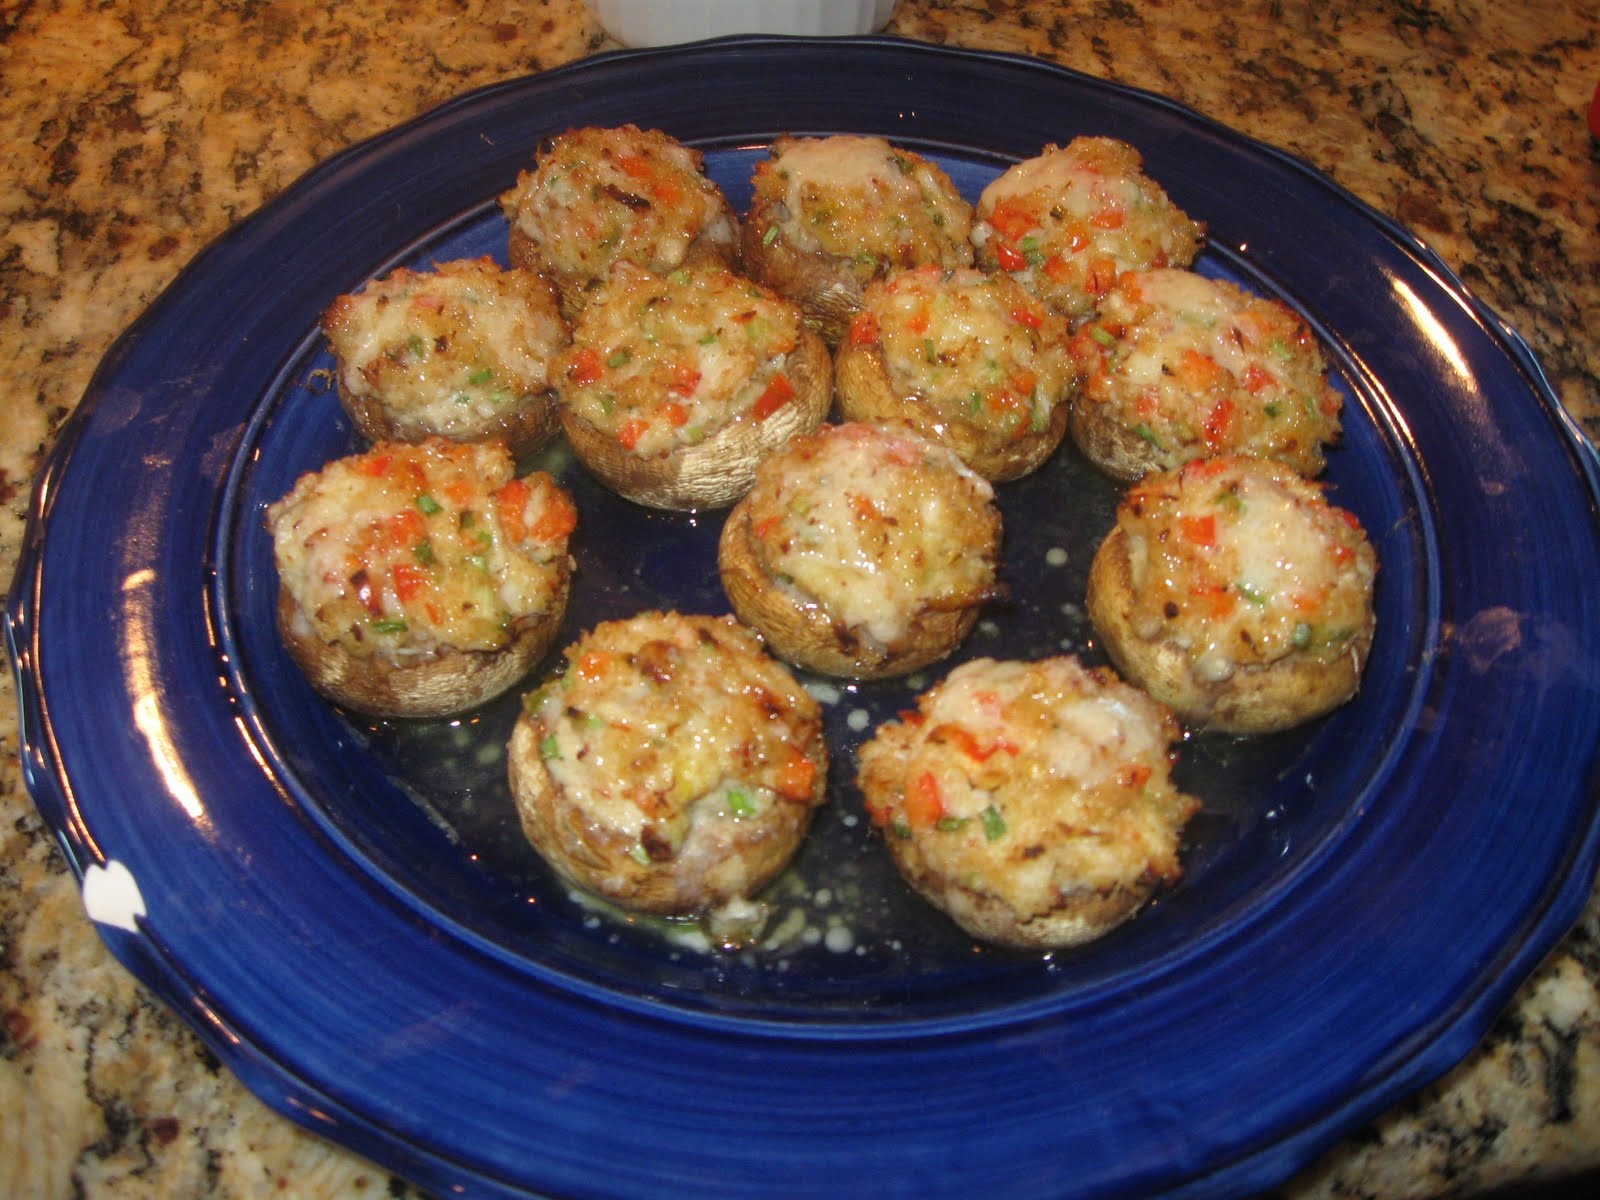 My Songs of Joy... Family Food & Wine: Crab Stuffed Mushrooms